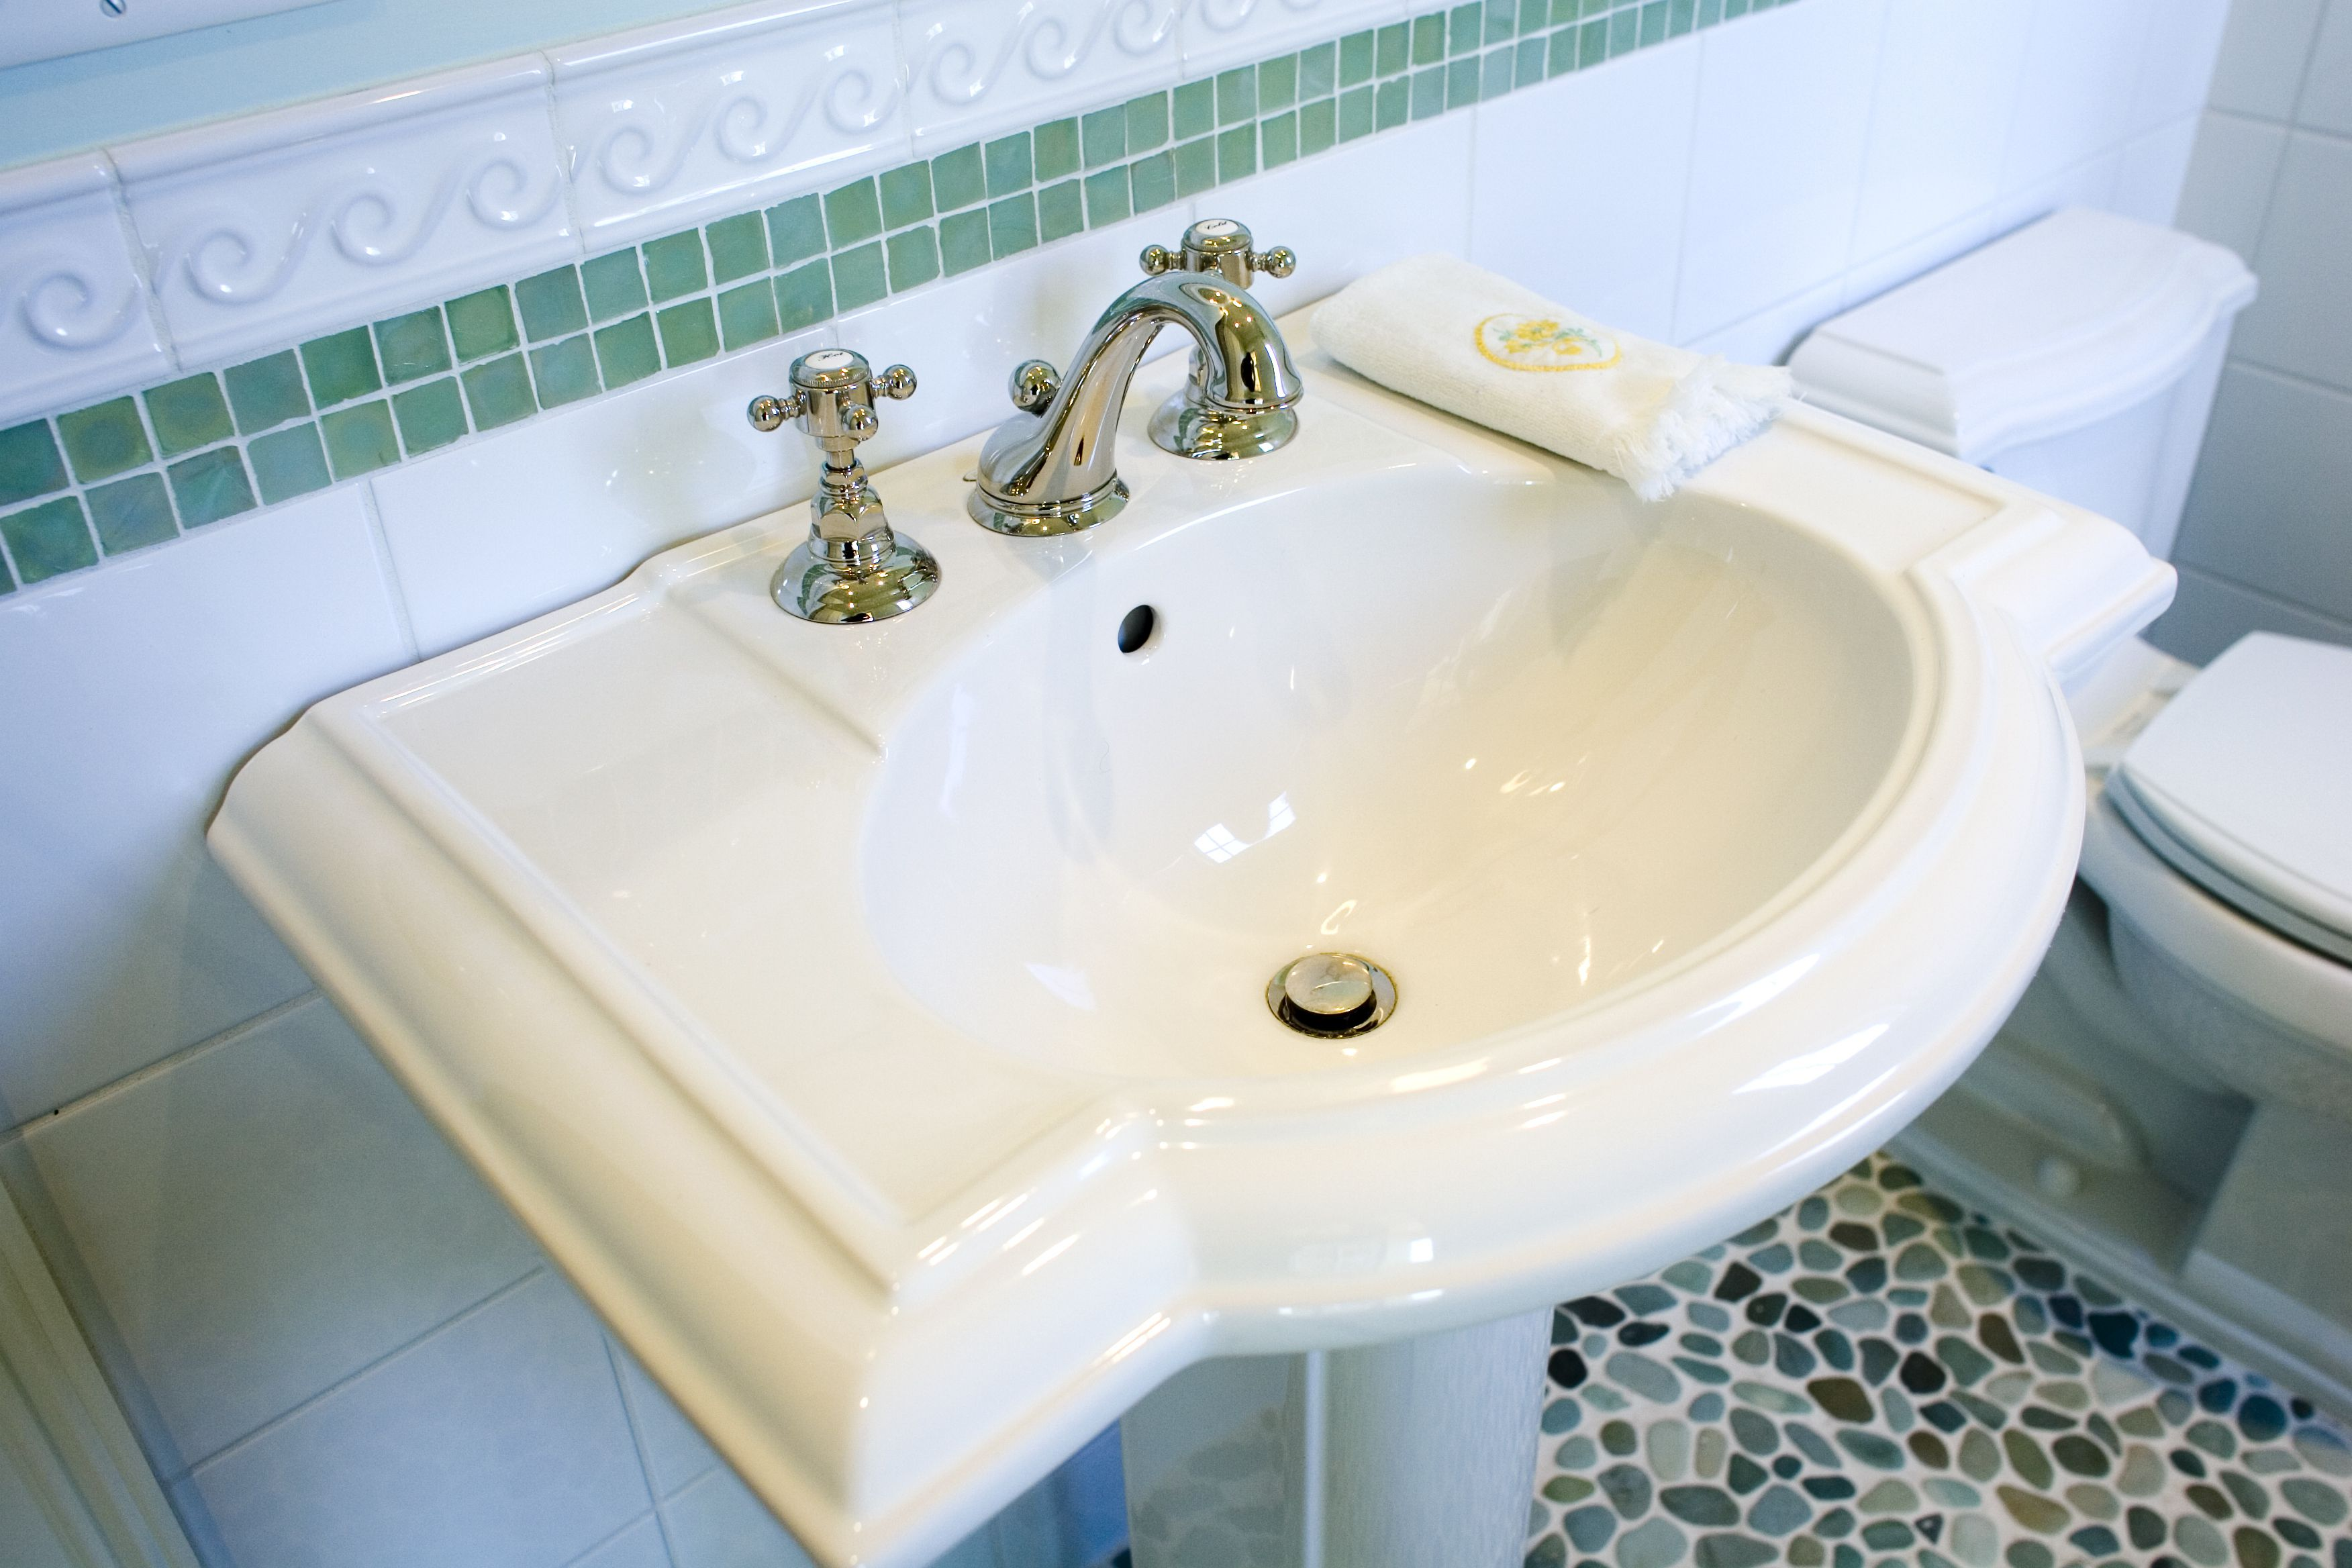 What Should You Know Before Buying A Pedestal Sink